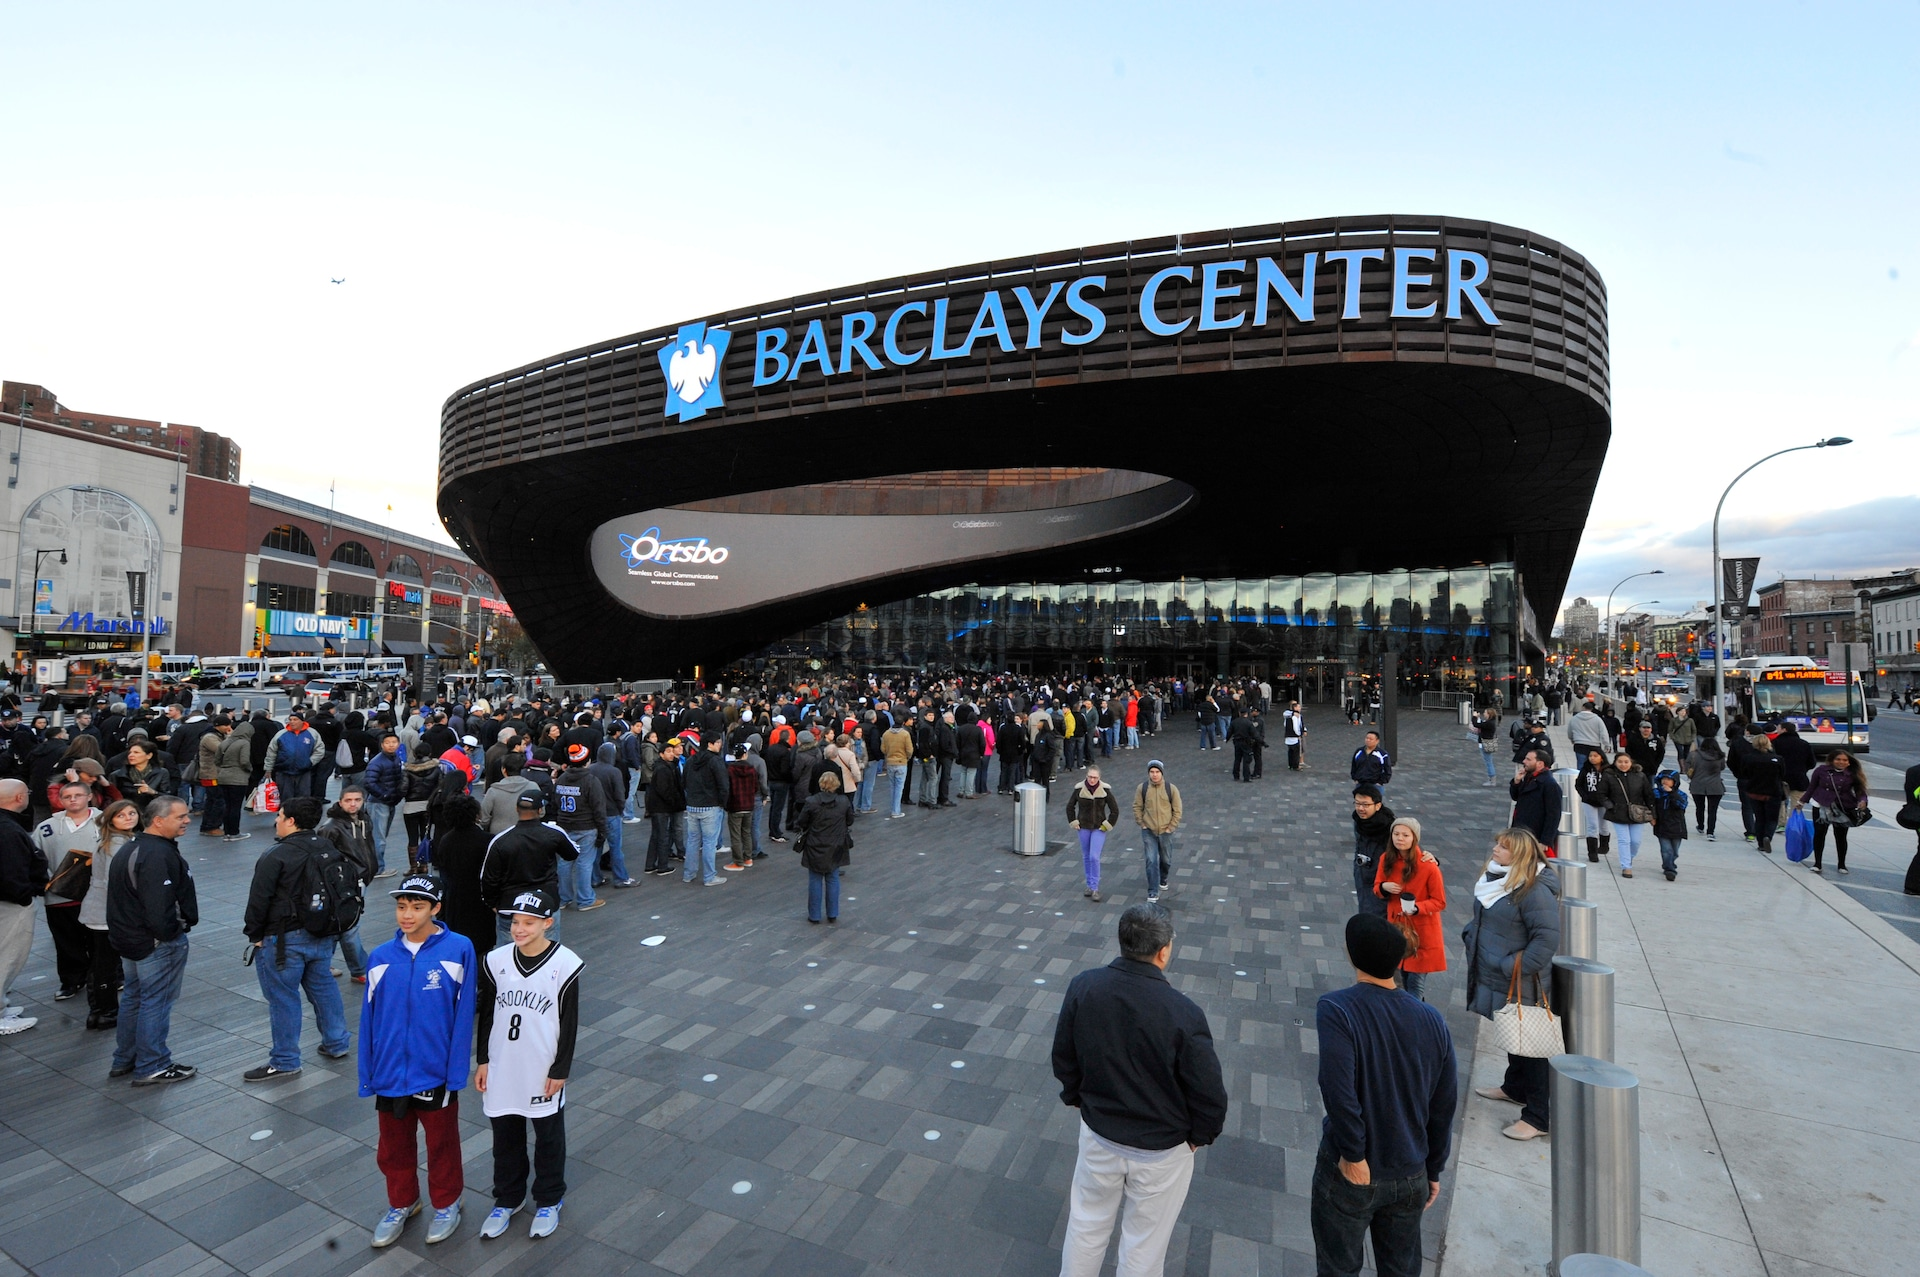 Statement from Brooklyn Nets, Barclays Center